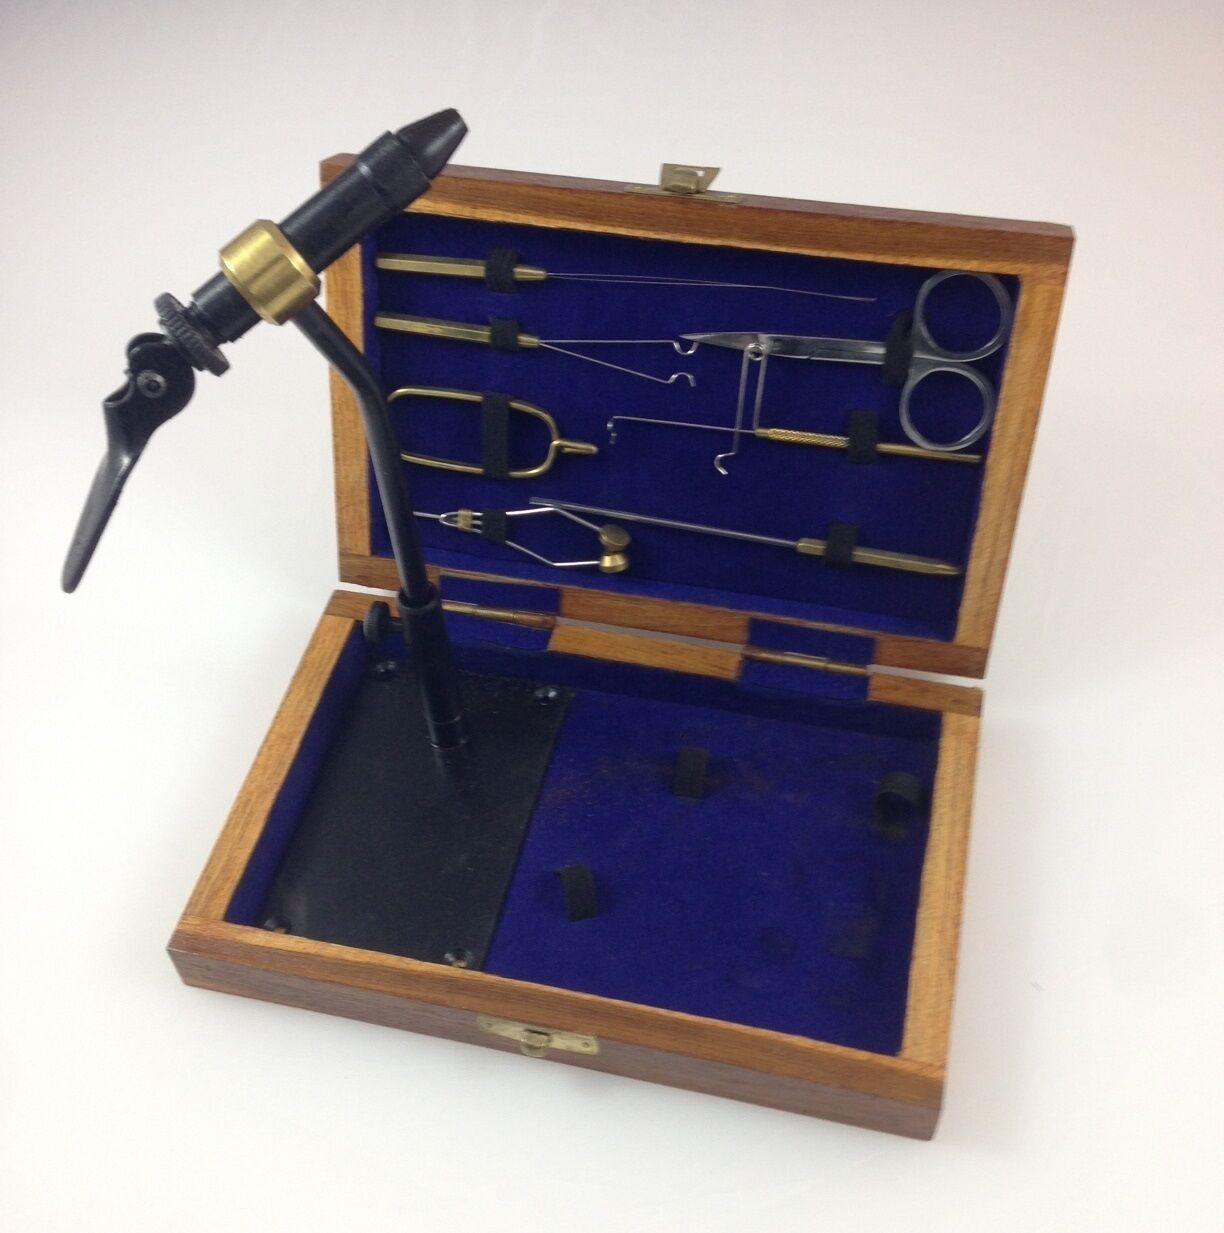 Kit, Fly Tying 9 Tools  in hand made Teak Wood Carrying Box FF796 EBN  in stock